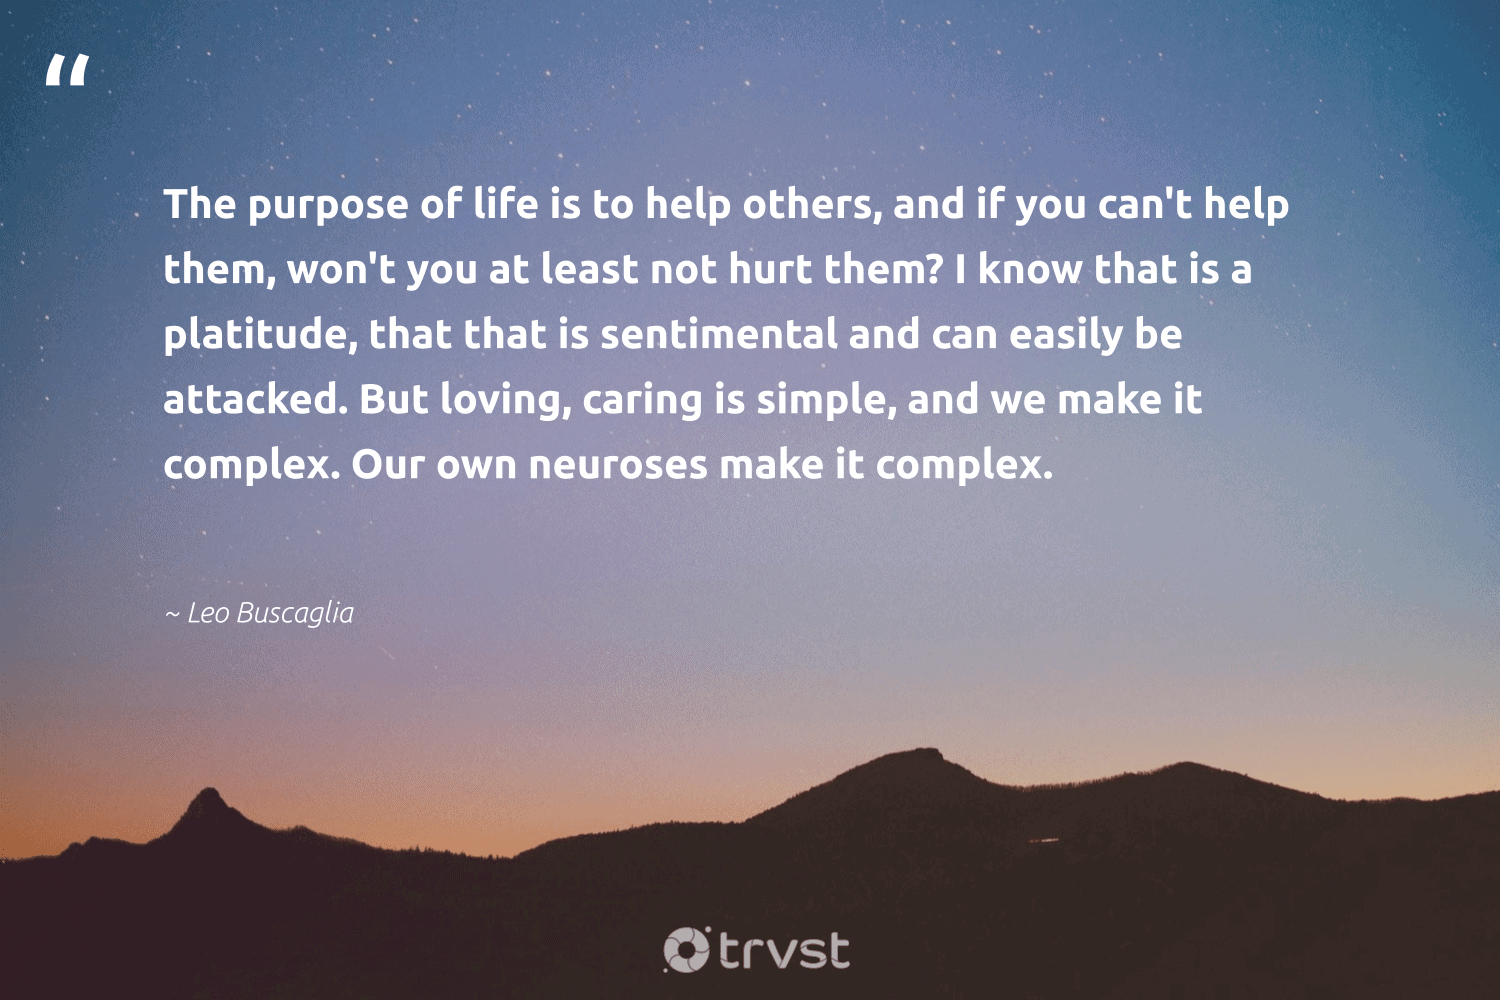 """""""The purpose of life is to help others, and if you can't help them, won't you at least not hurt them? I know that is a platitude, that that is sentimental and can easily be attacked. But loving, caring is simple, and we make it complex. Our own neuroses make it complex.""""  - Leo Buscaglia #trvst #quotes #purpose #findpurpose #togetherwecan #changemakers #beinspired #findingpupose #health #nevergiveup #gogreen #purposedriven"""